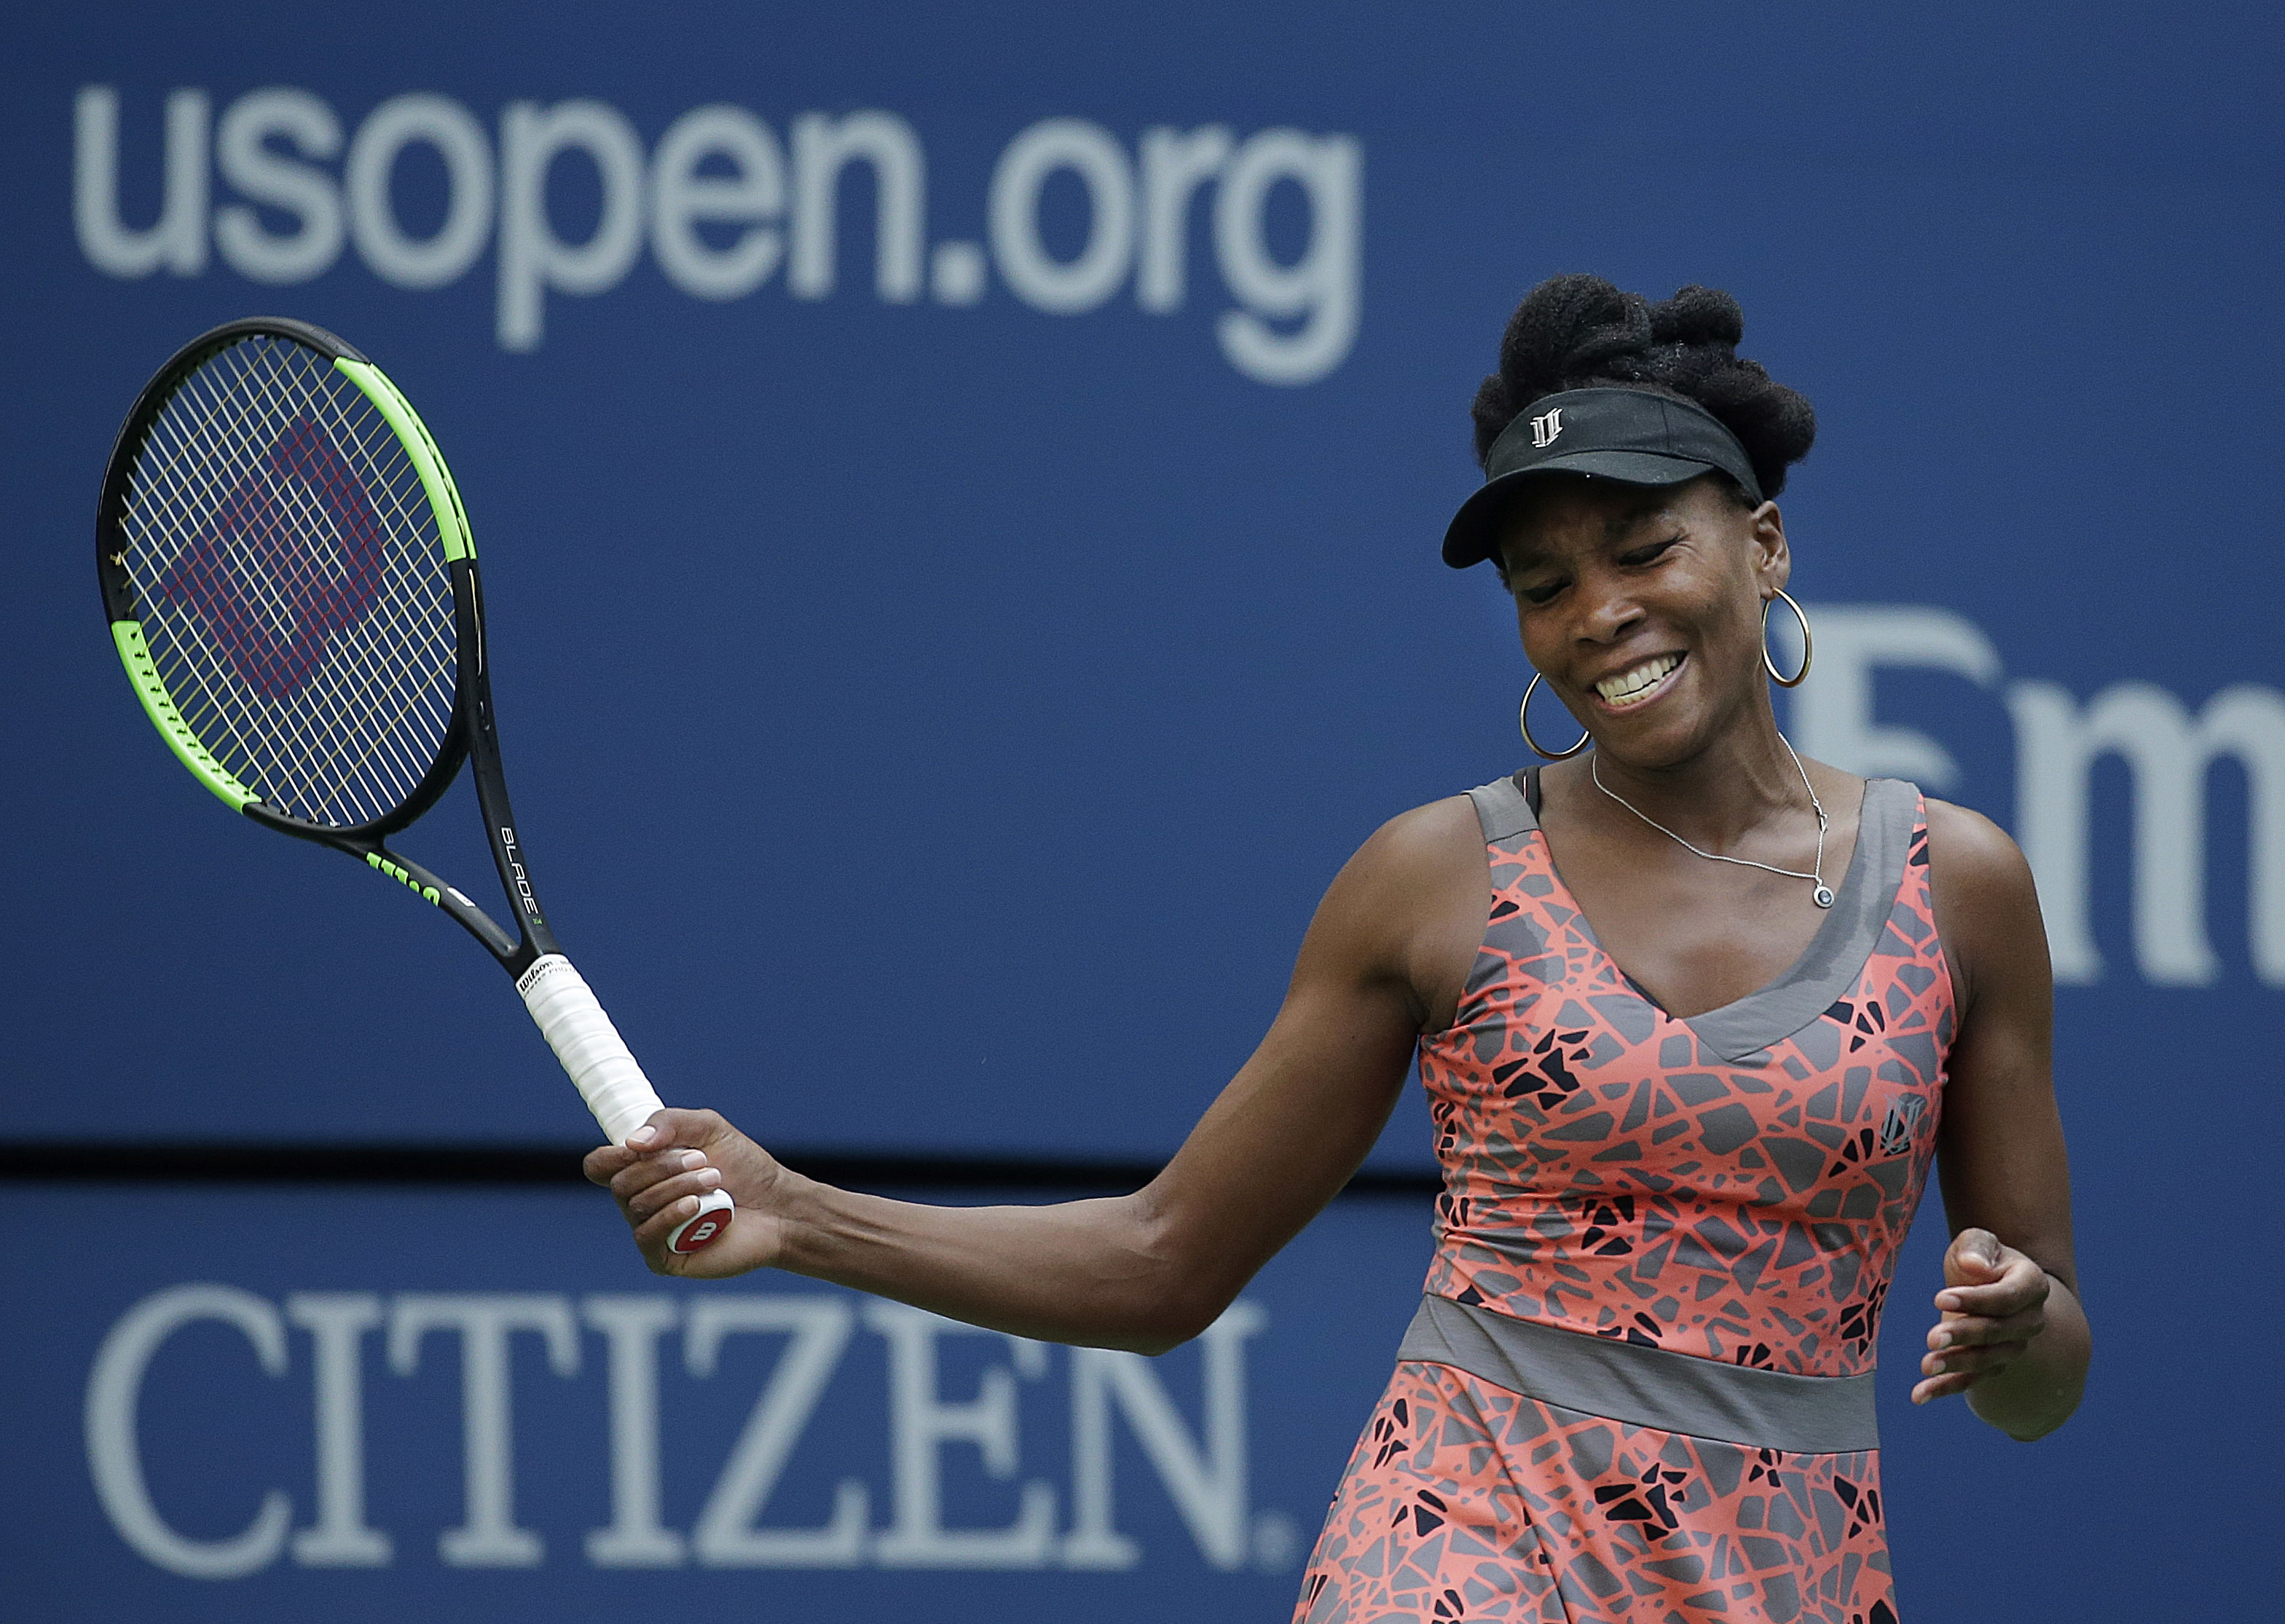 Venus Williams, of the United States, reacts after losing a point to Maria Sakkari, of Greece, during the third round of the U.S. Open tennis tournament, Friday, Sept. 1, 2017, in New York. (AP Photo/Seth Wenig)